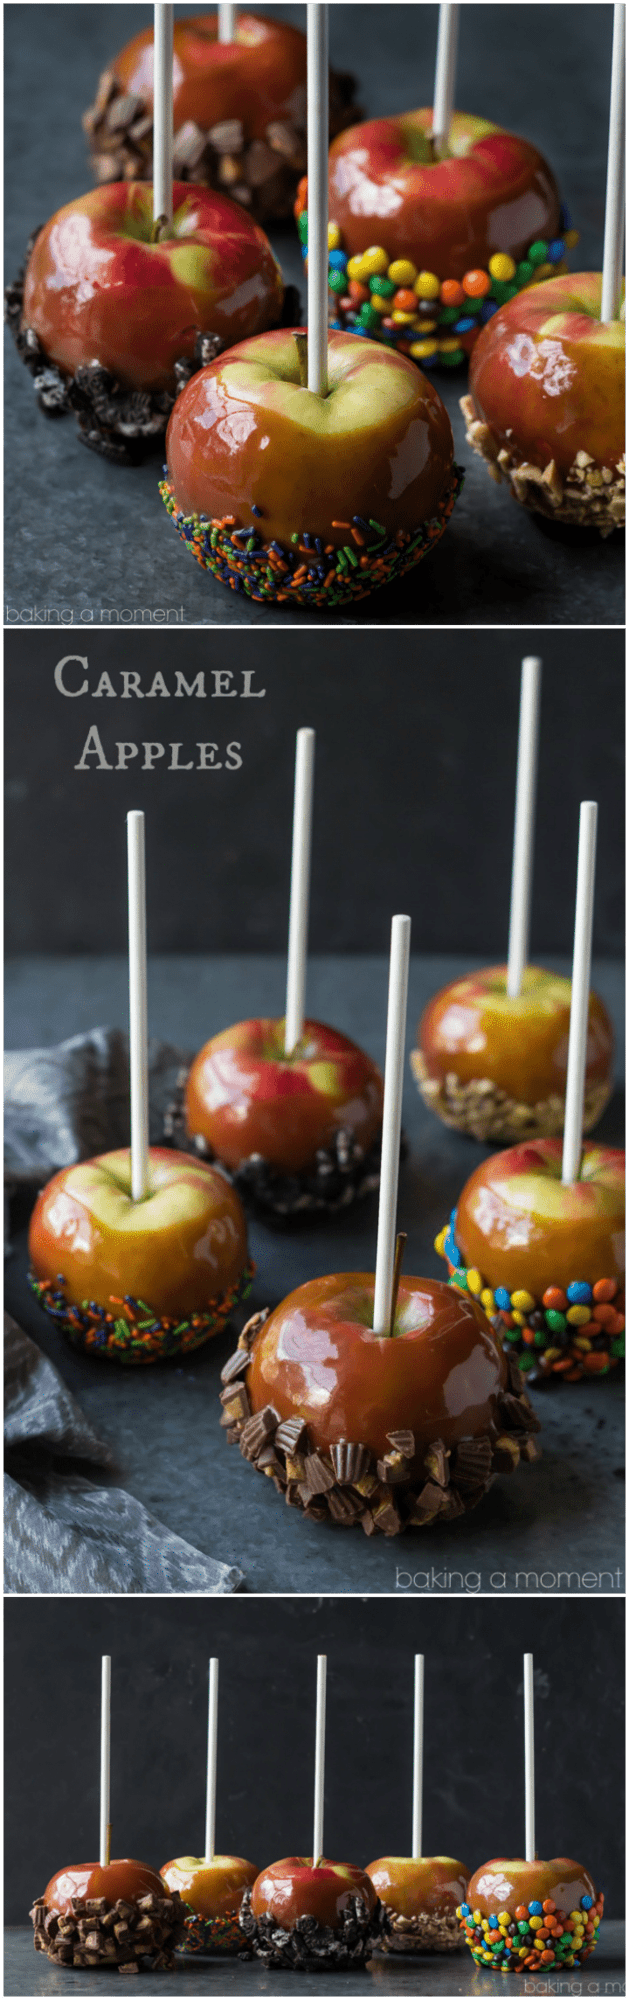 Caramel Apples 5 Ways | Baking a Moment